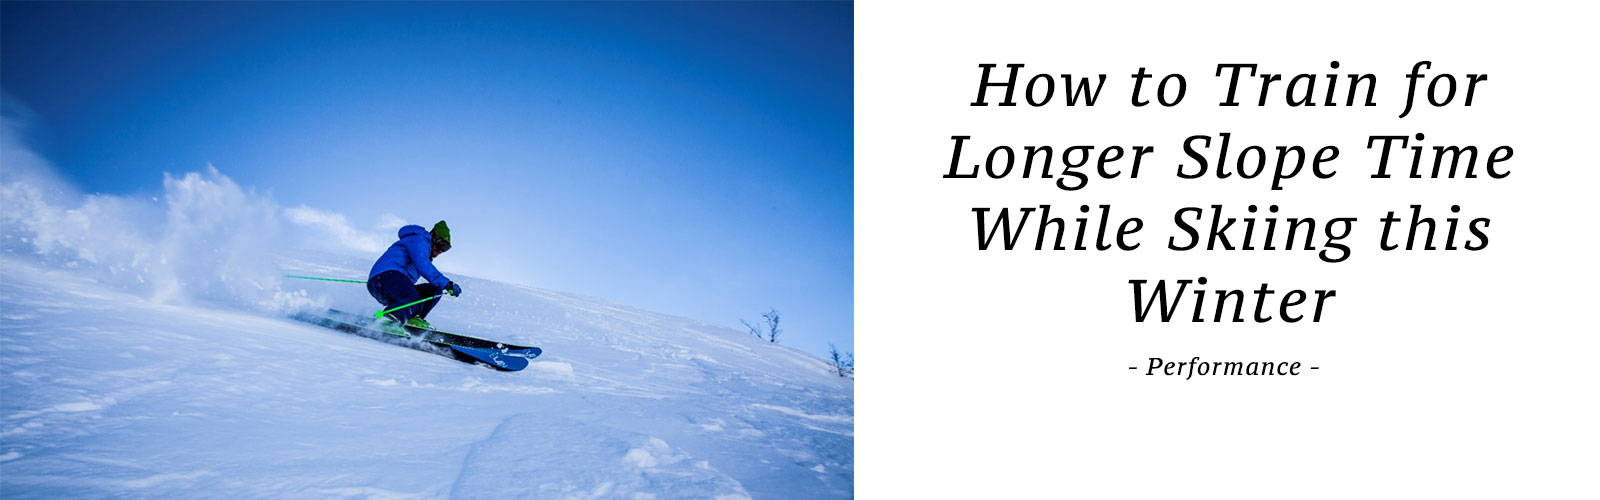 How to Train for Longer Slope Time While Skiing this Winter